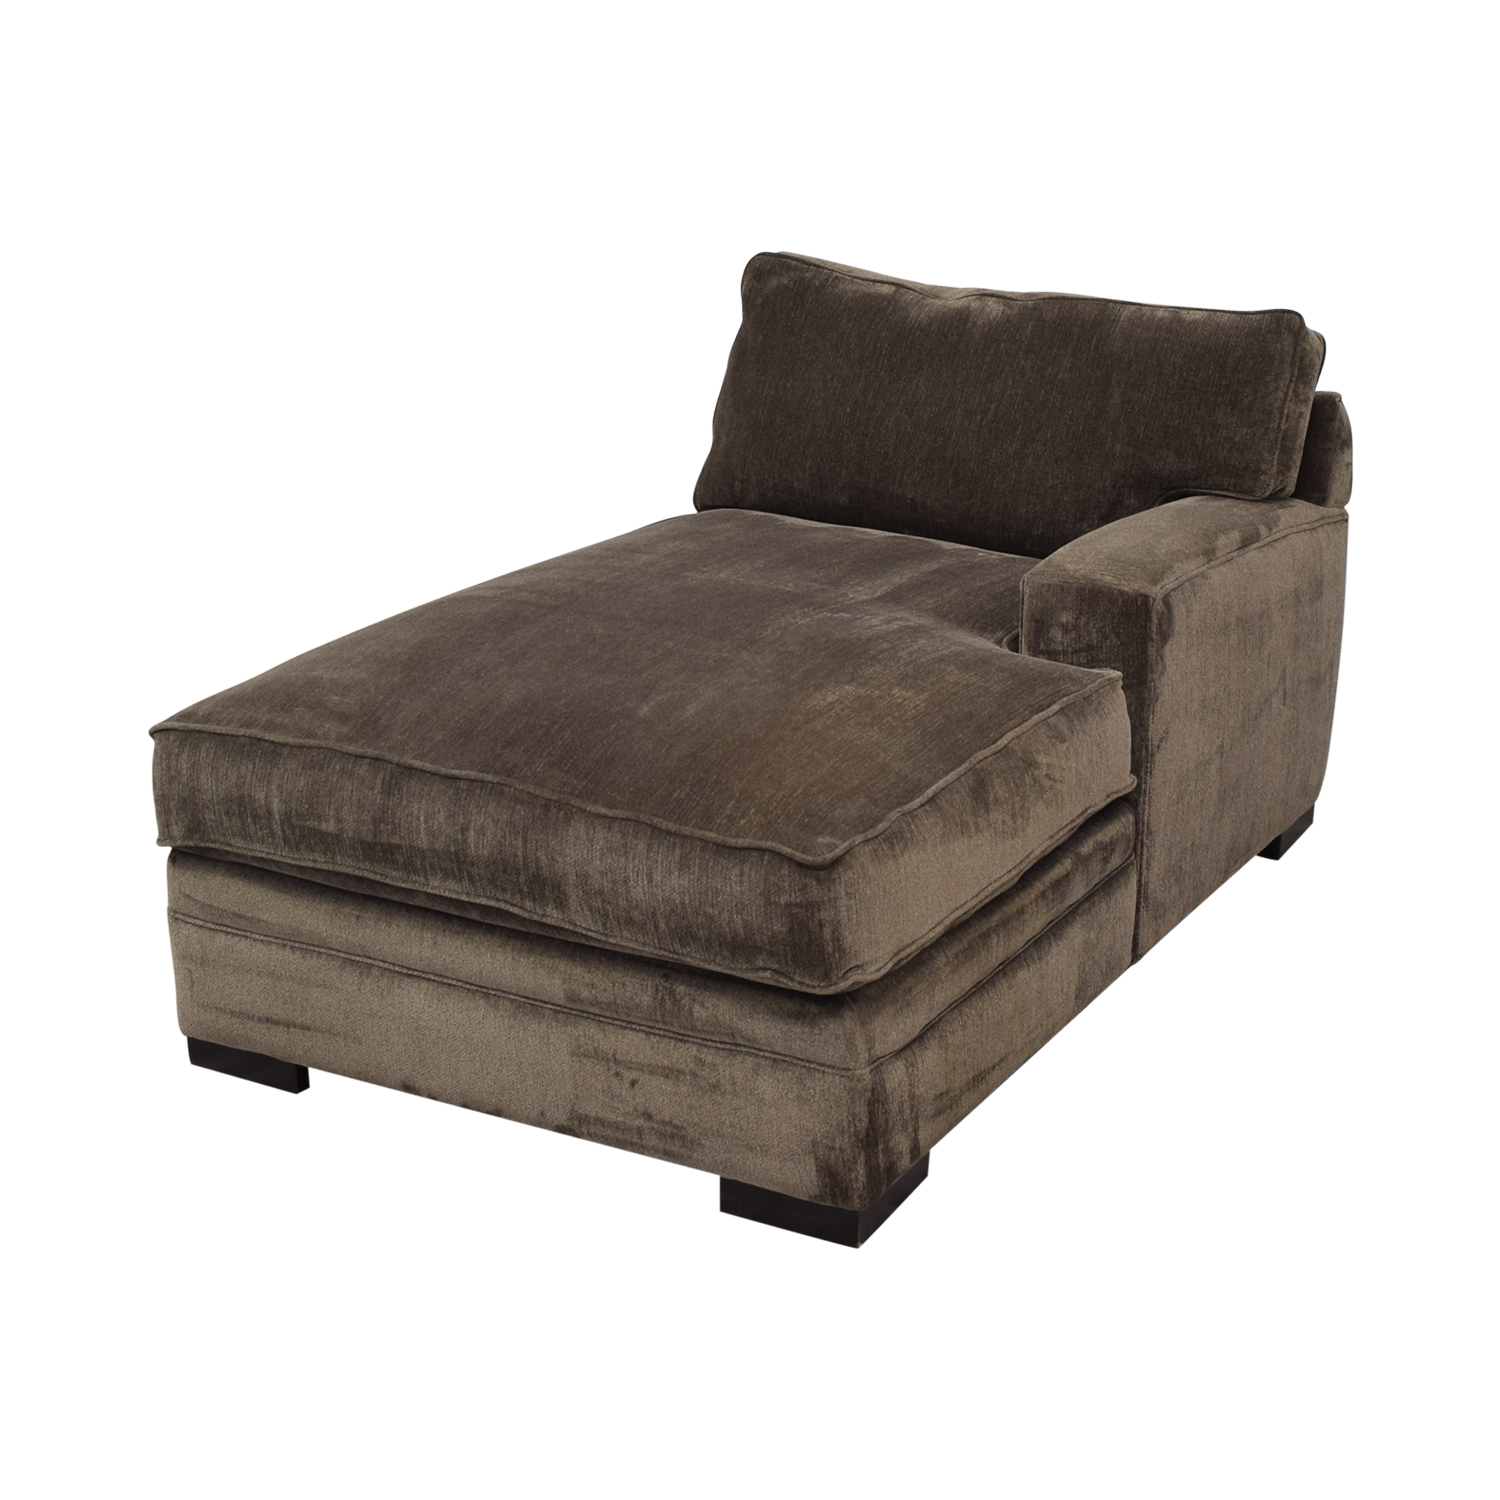 Macy's Macy's Teddy Brown Chaise Lounger nj